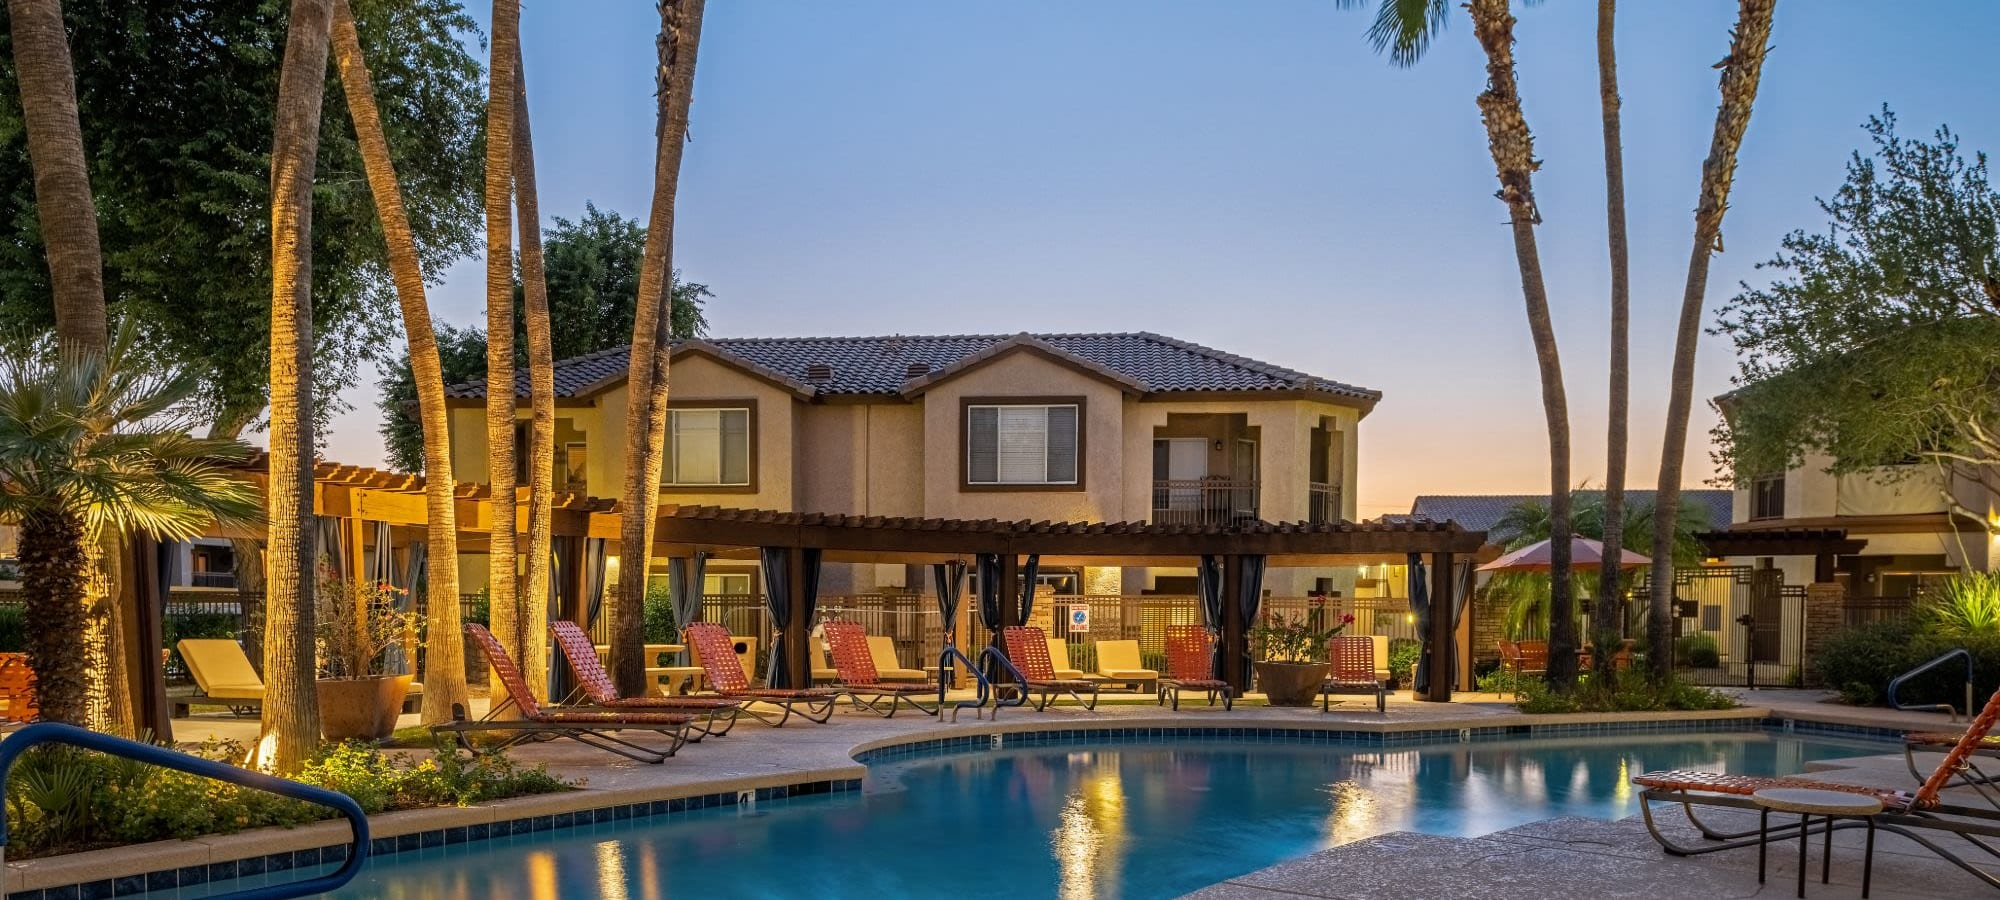 Gallery of photos for Azure Creek in Cave Creek, Arizona